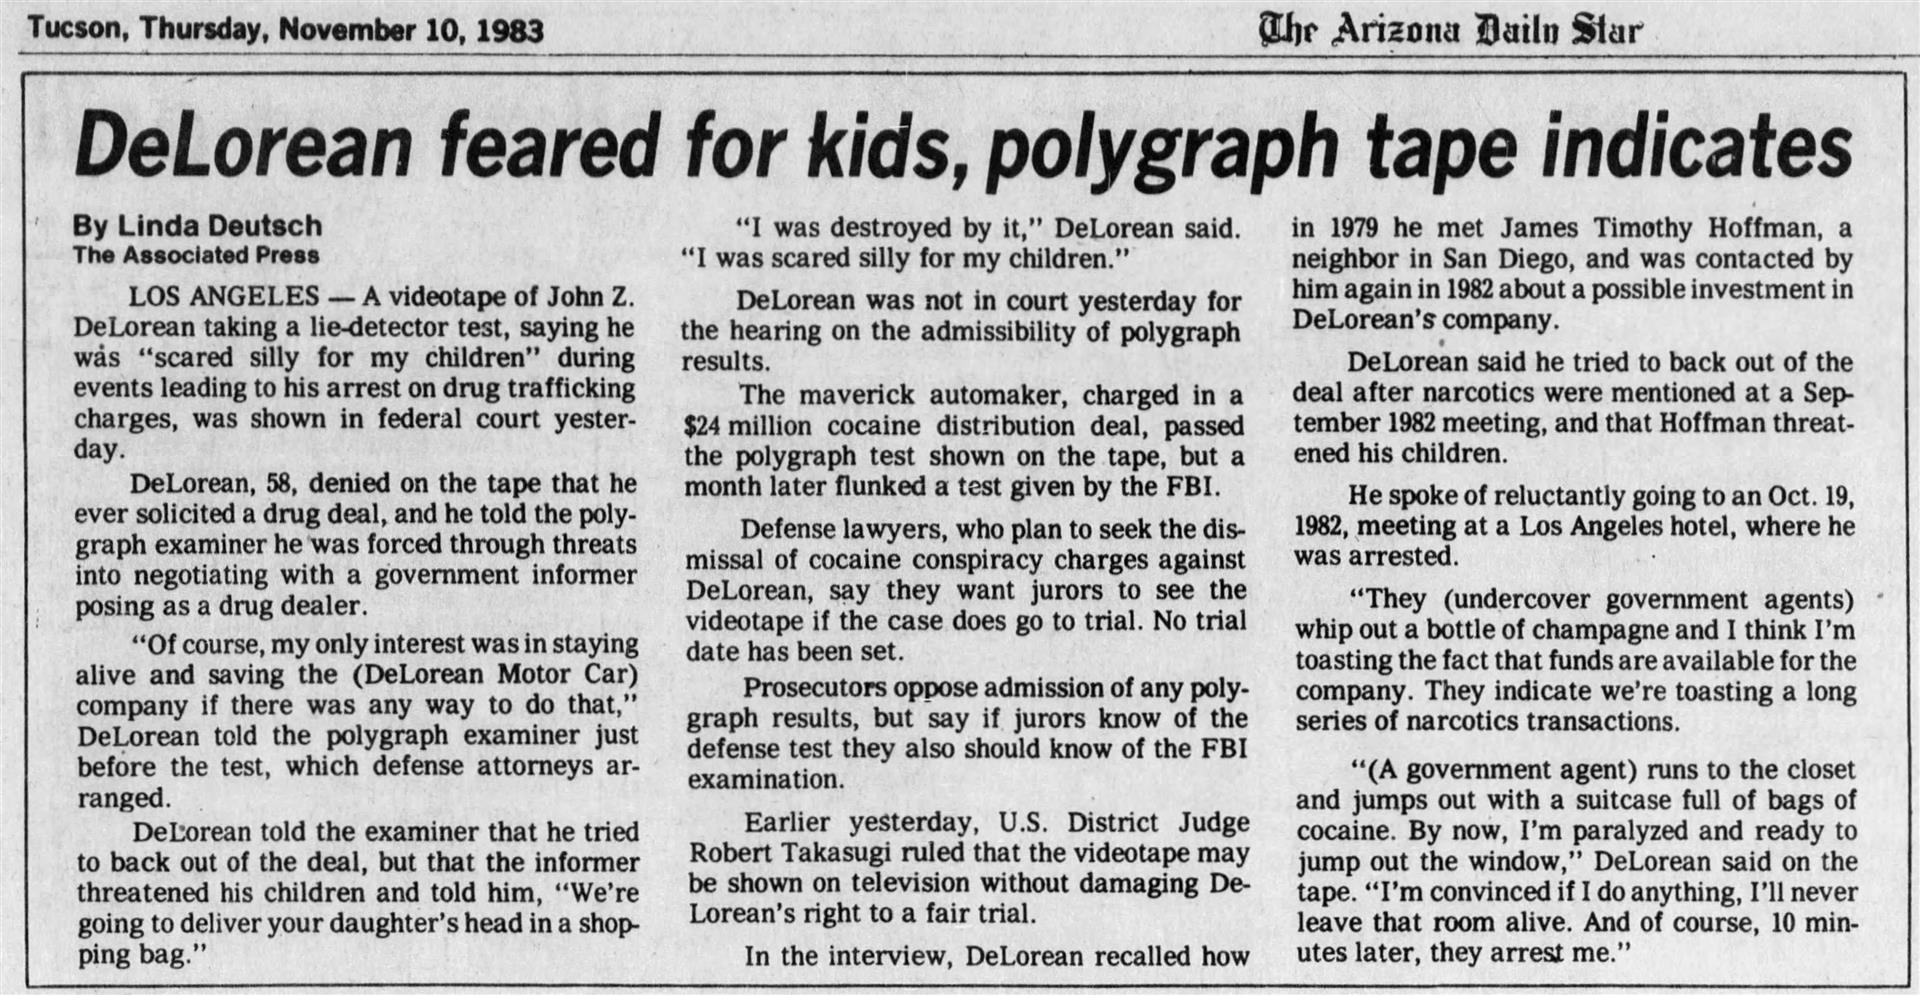 1983-11-10 - Arizona Daily Star - DeLorean feared for kids, polygraph tape indicates | DeLoreanDirectory.com